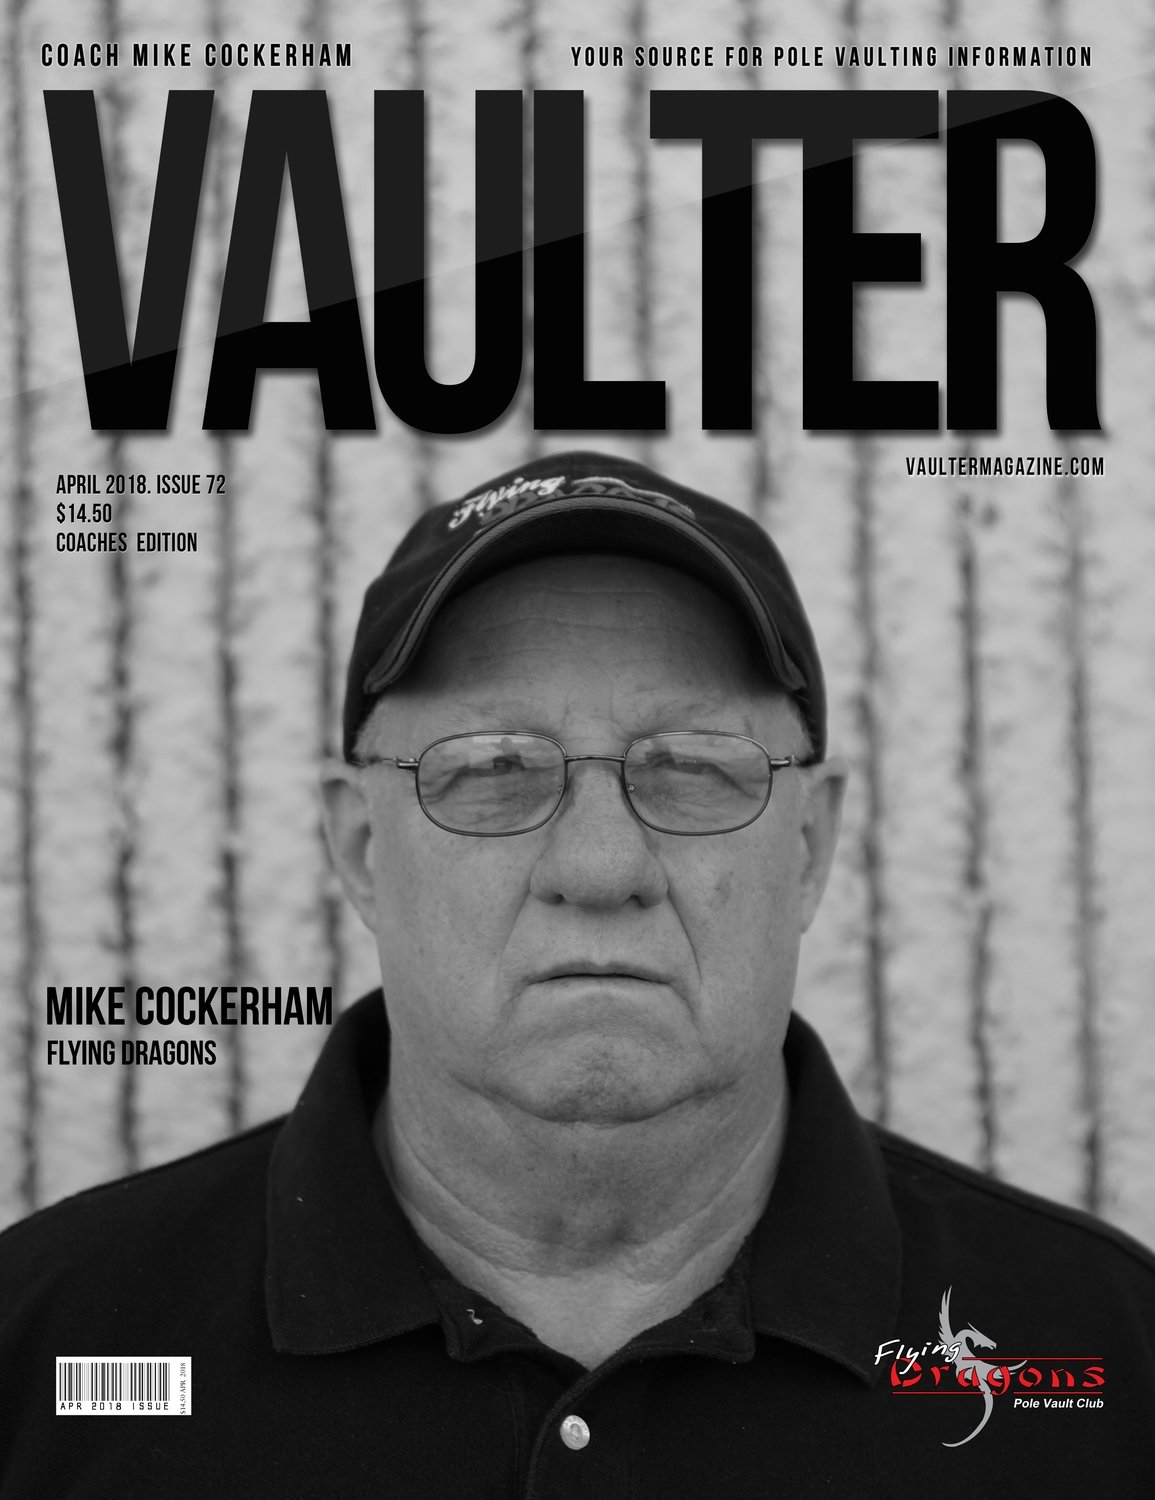 April 2018 Coach Mike Cockerham Issue of Vaulter Magazine Cover Poster for Vaulter Magazine